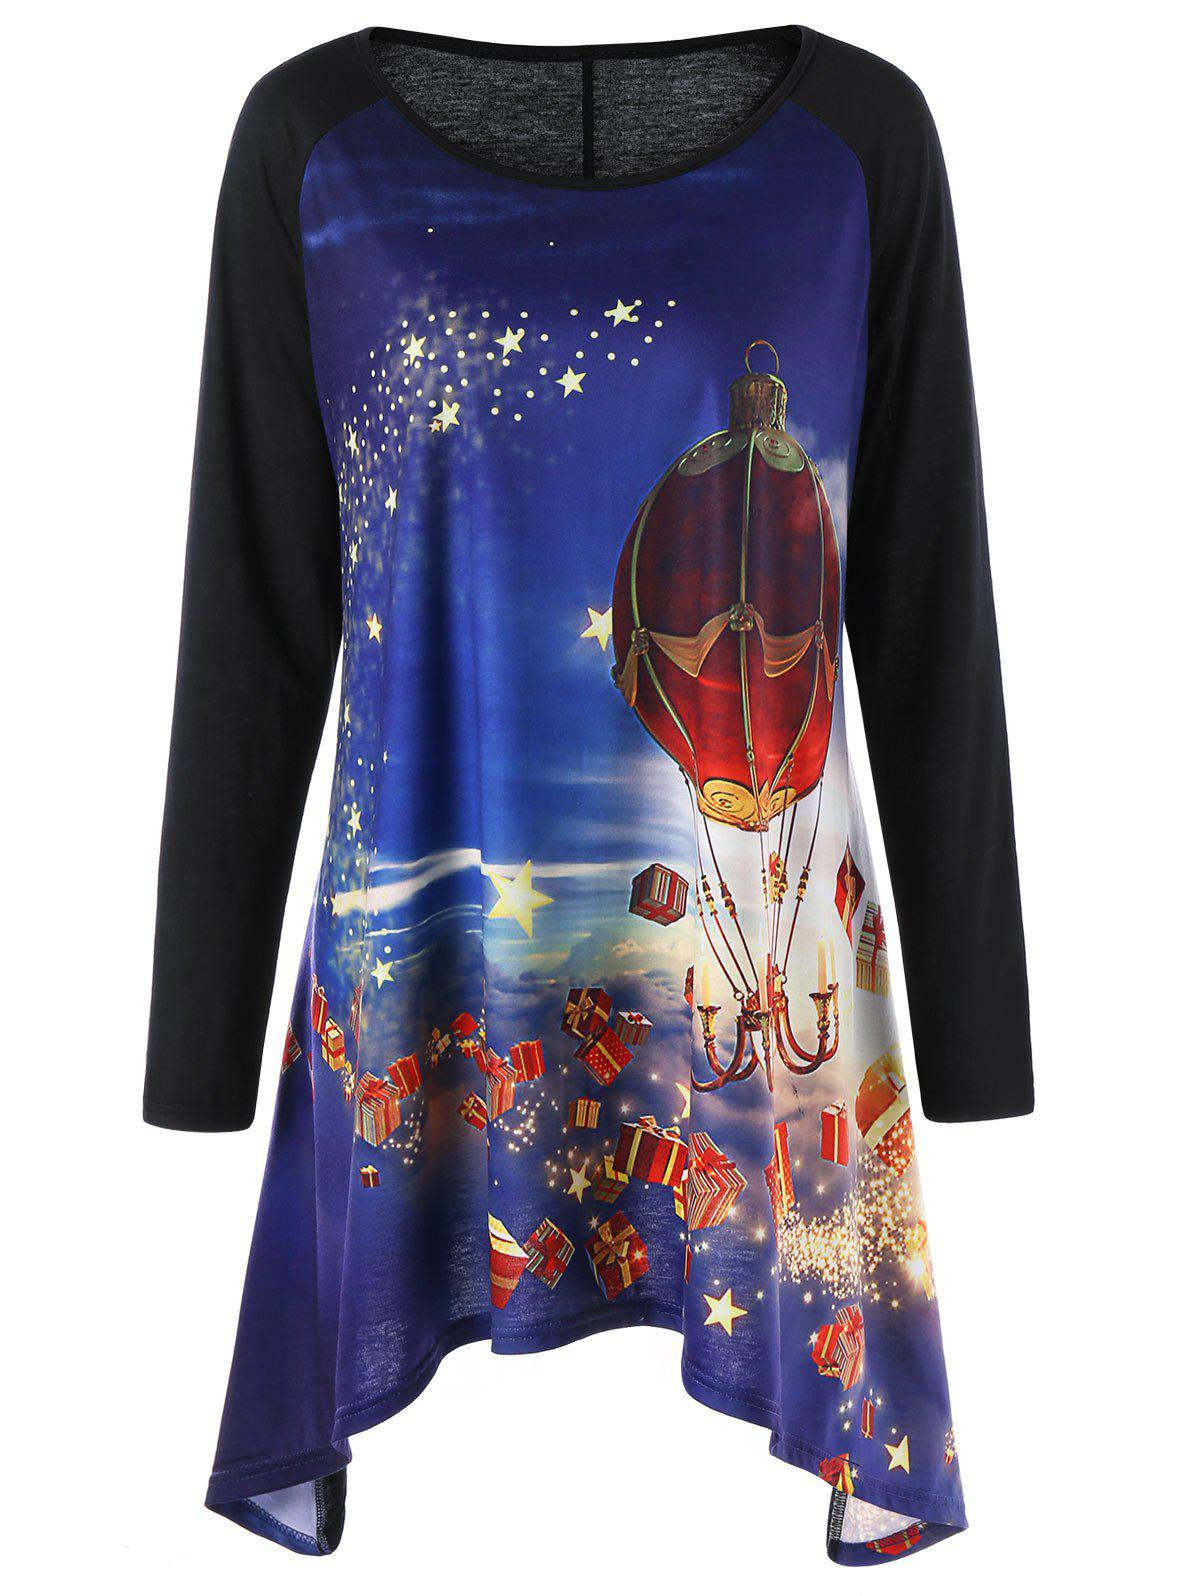 Christmas Plus Size Crescent Hem Tunic TopWOMEN<br><br>Size: 2XL; Color: BLUE; Material: Polyester,Spandex; Shirt Length: Long; Sleeve Length: Full; Collar: Round Neck; Style: Casual; Season: Fall,Spring; Pattern Type: Others; Weight: 0.3200kg; Package Contents: 1 x Top;